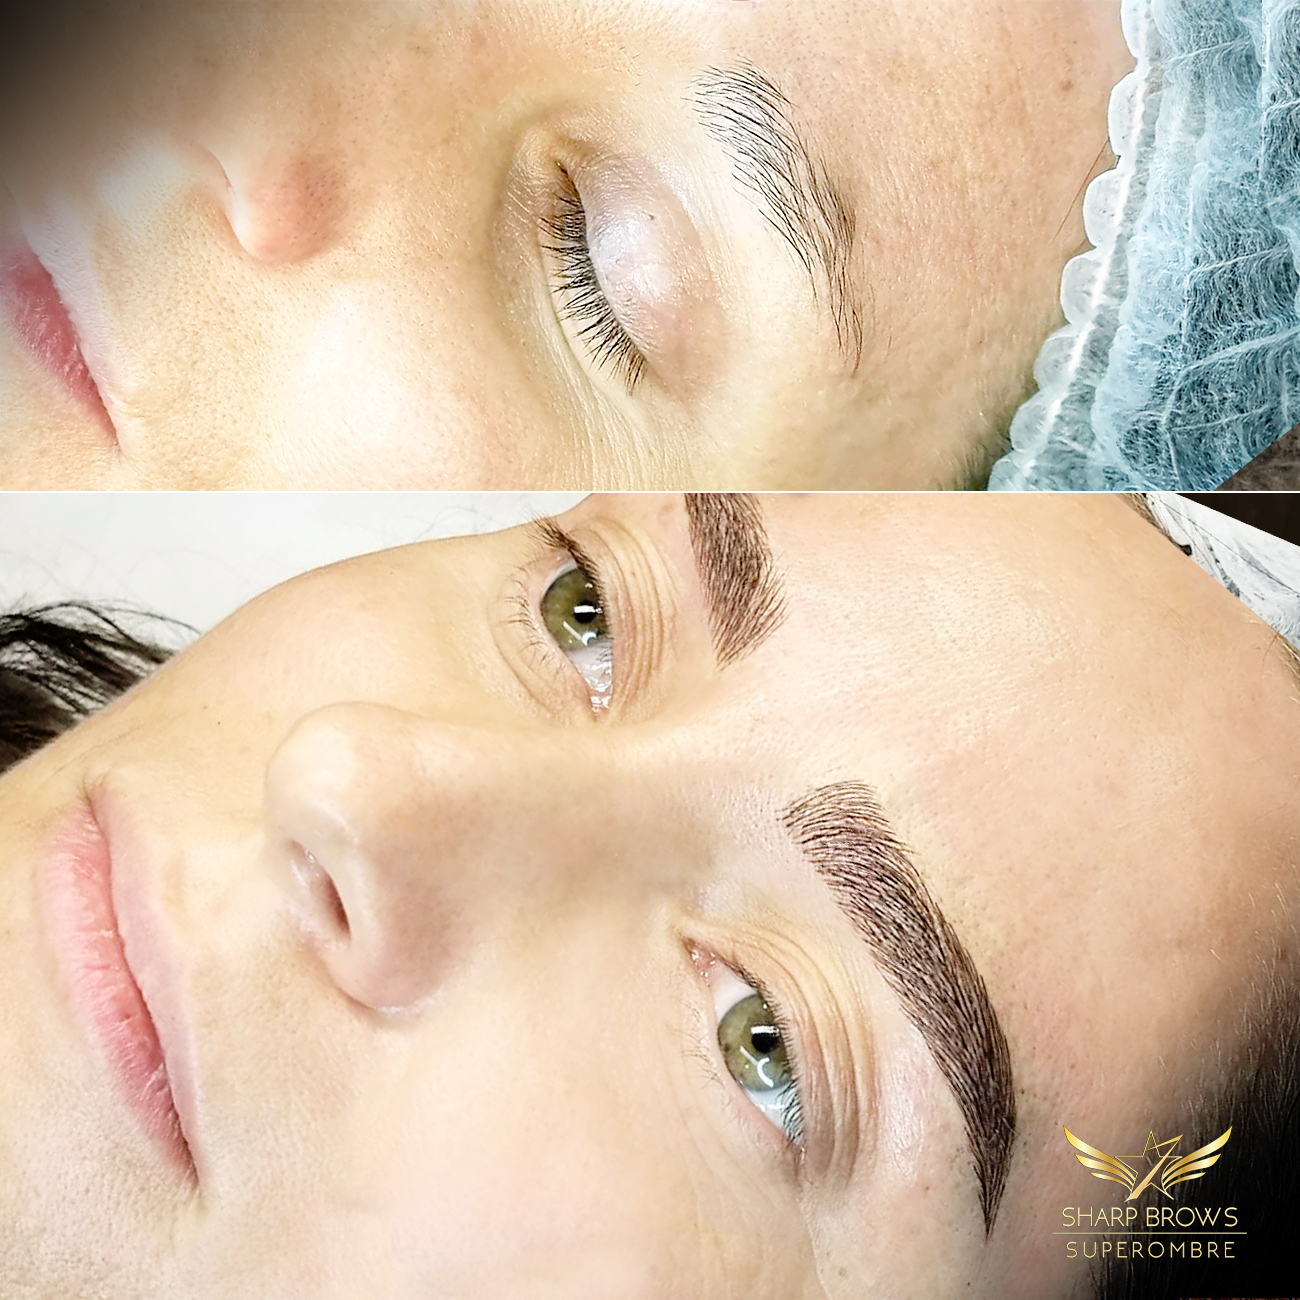 Light microblading - Just another great change with Light microblading. From zero to hero.